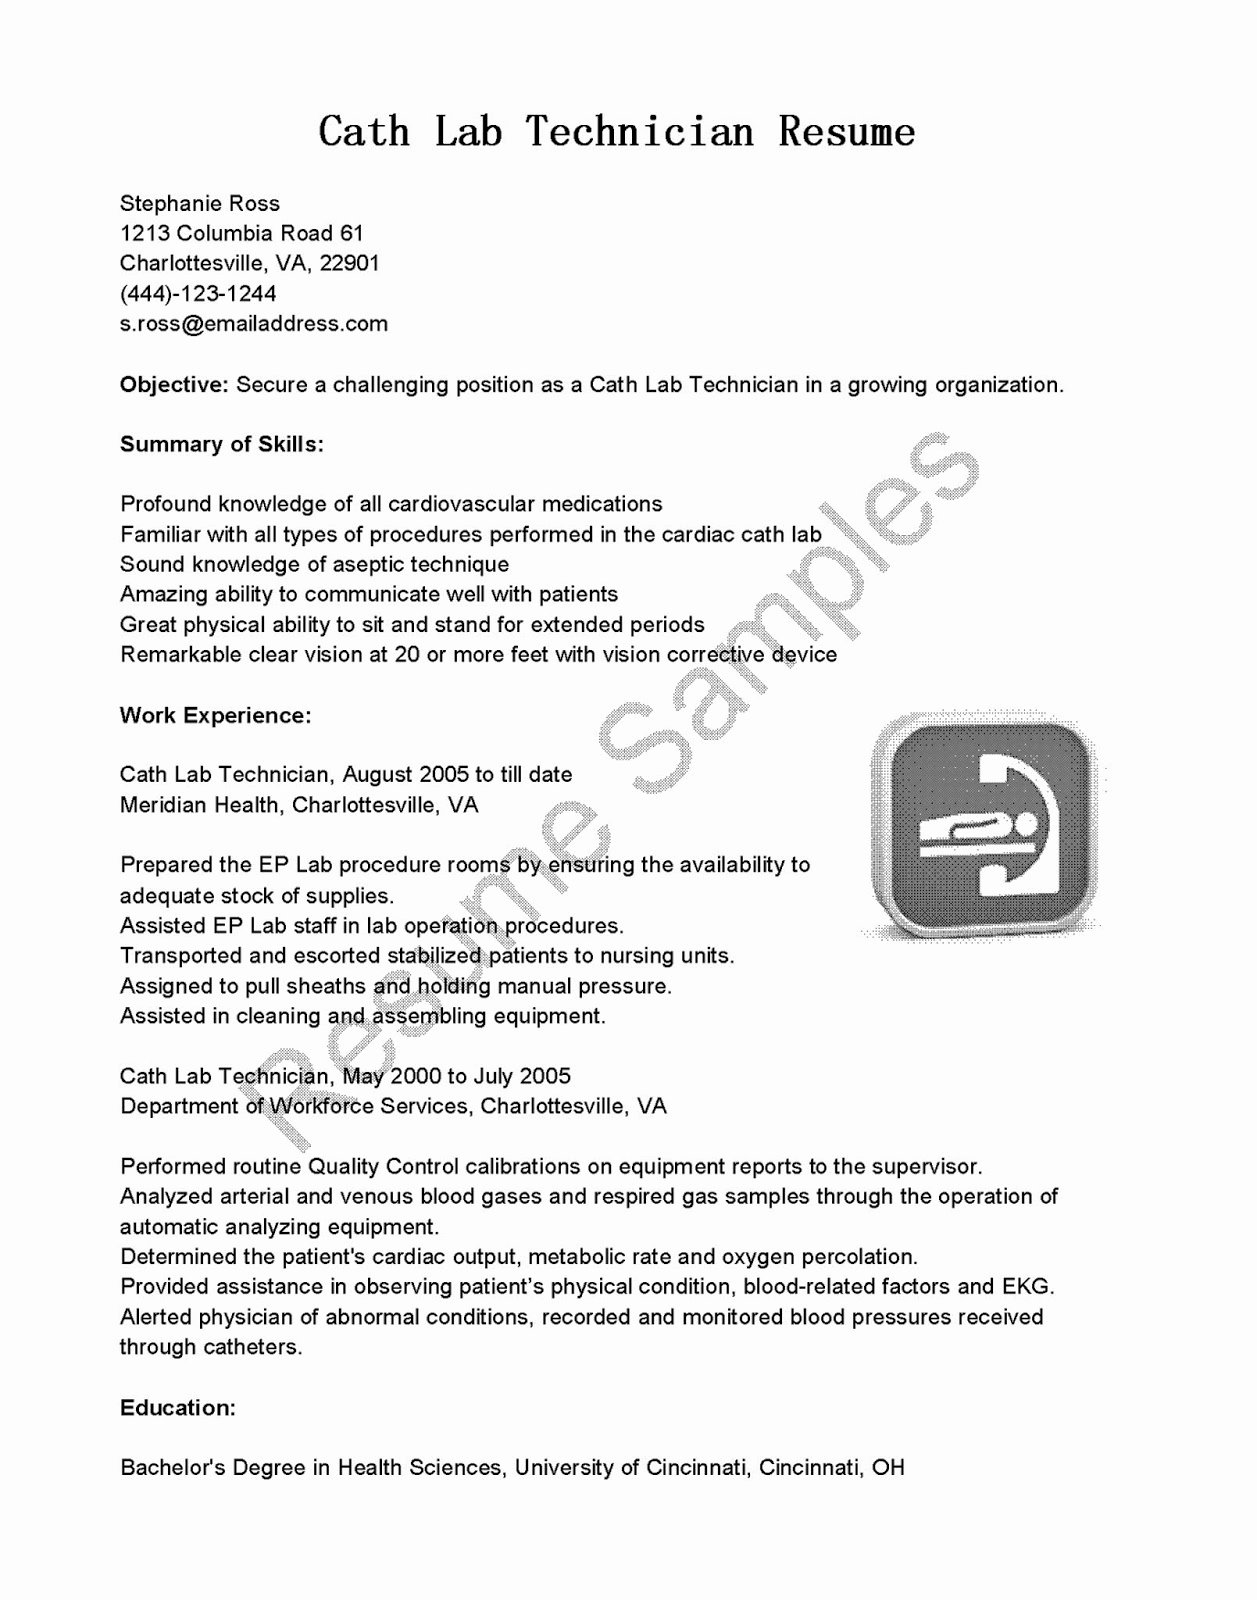 Resume for Lab Technician Elegant Resume Samples Cath Lab Technician Resume Sample